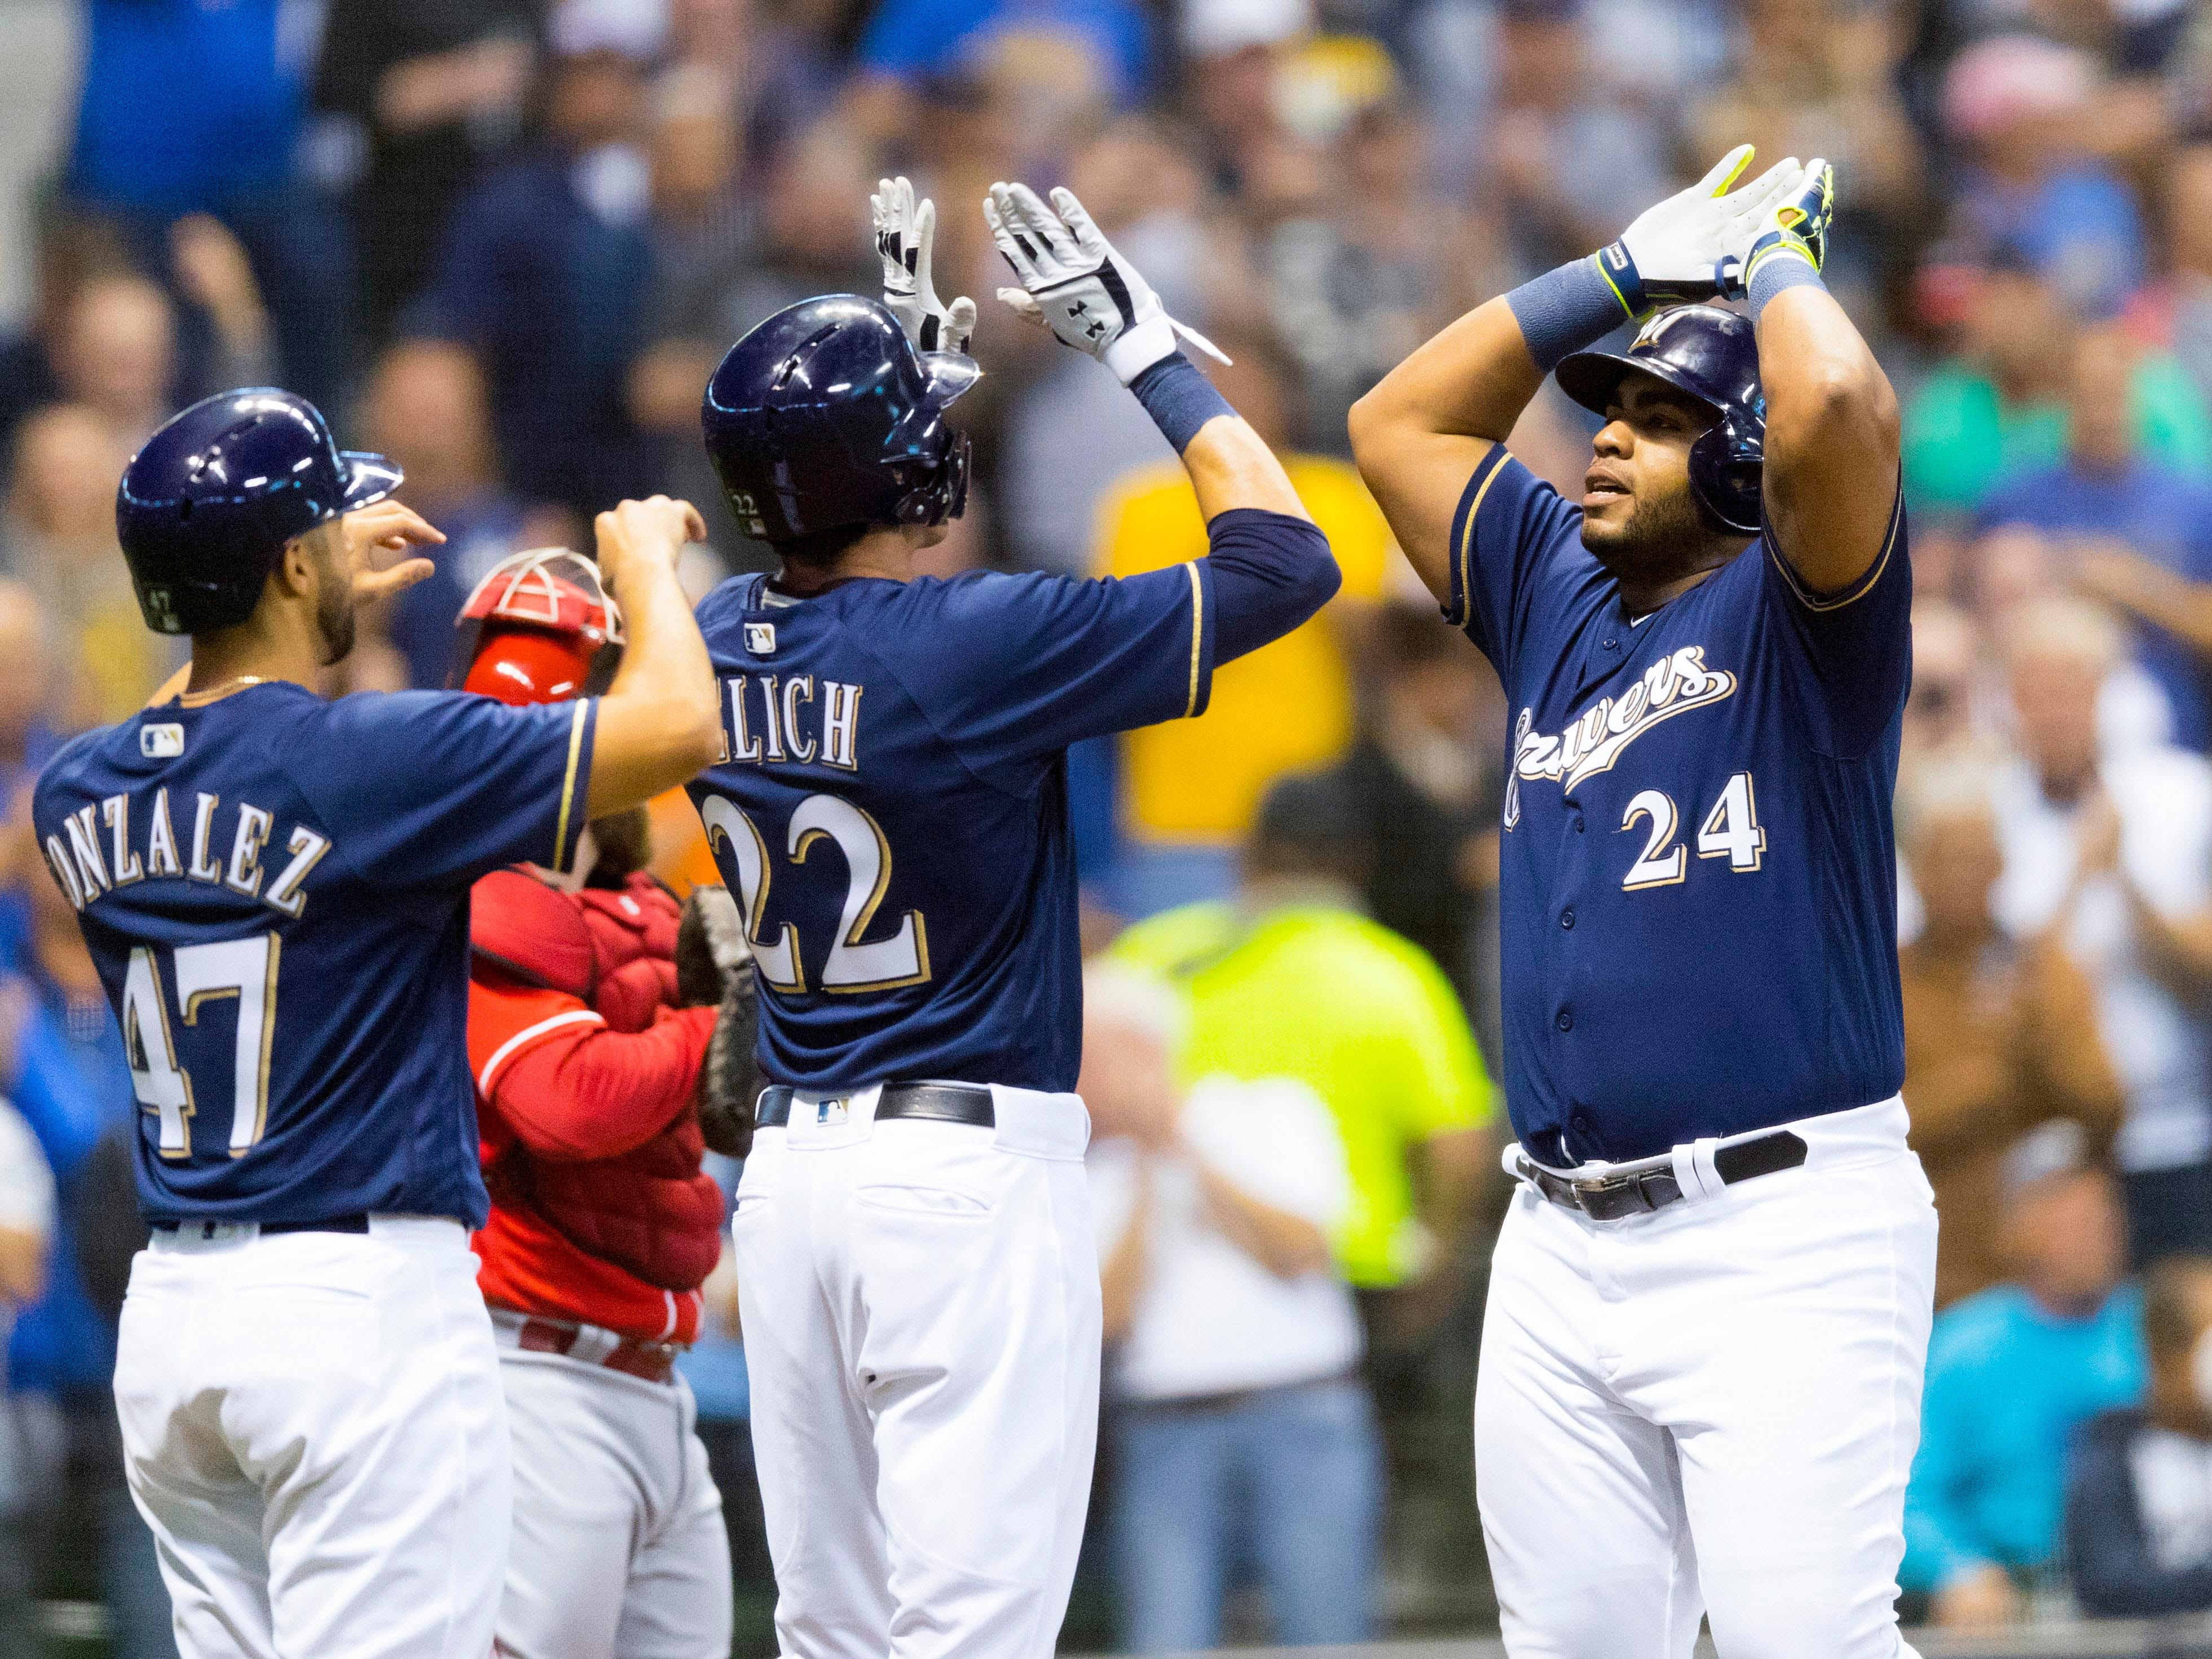 Gio Gonzalez and Christian Yelich greet Jesus Aguilar as he reaches home after smacking a three-run homer against the Reds on Wednesday night.